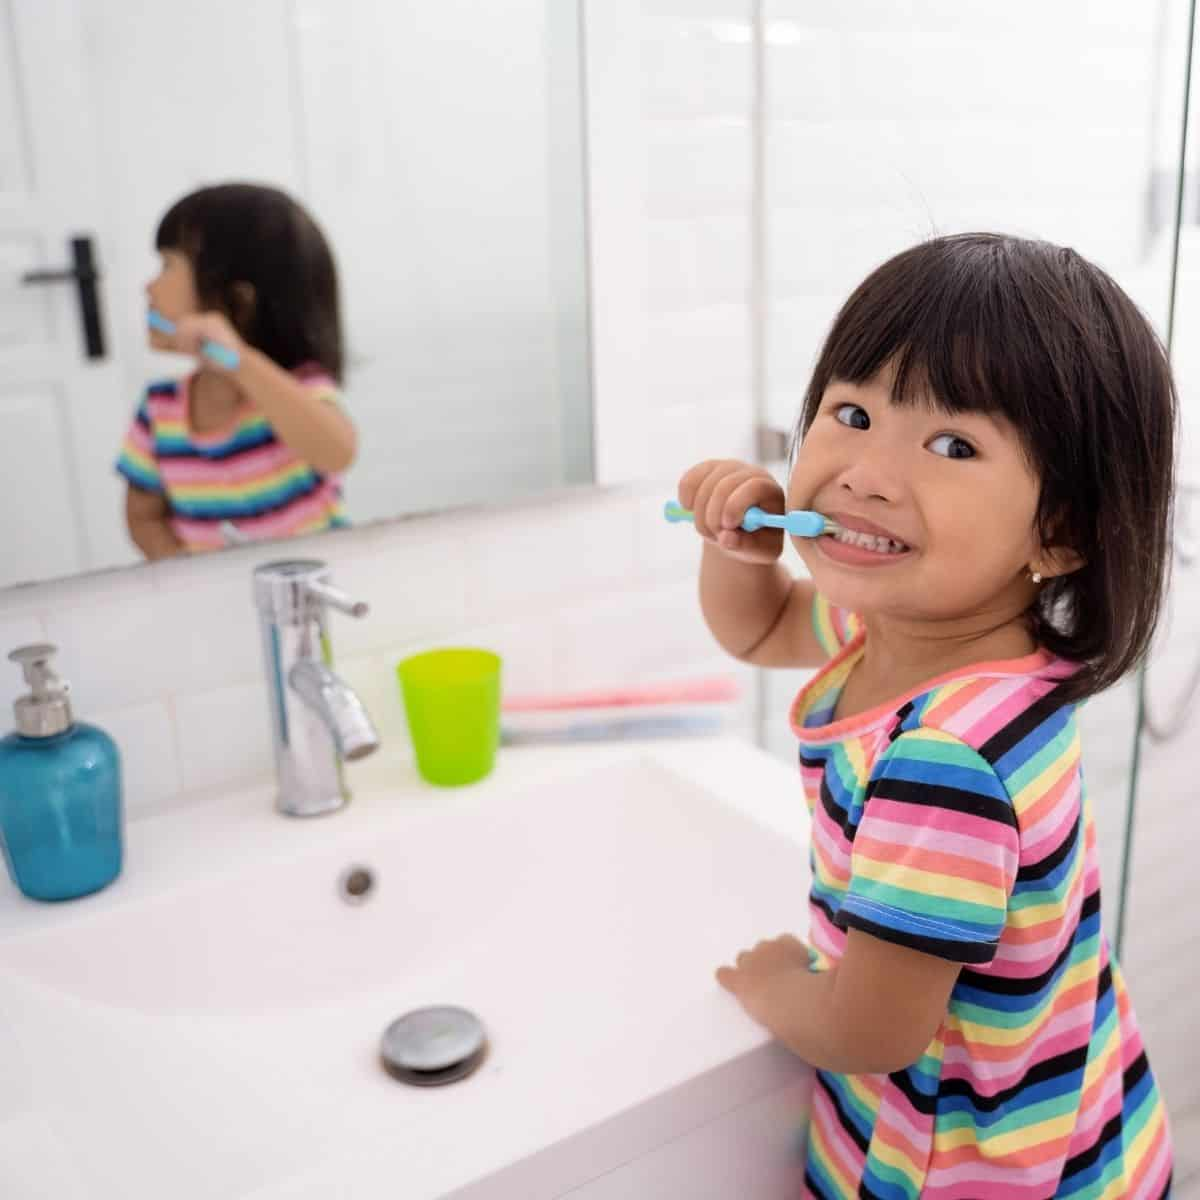 young toddler brushes her teeth in front of bathroom sink with her reflection in mirror